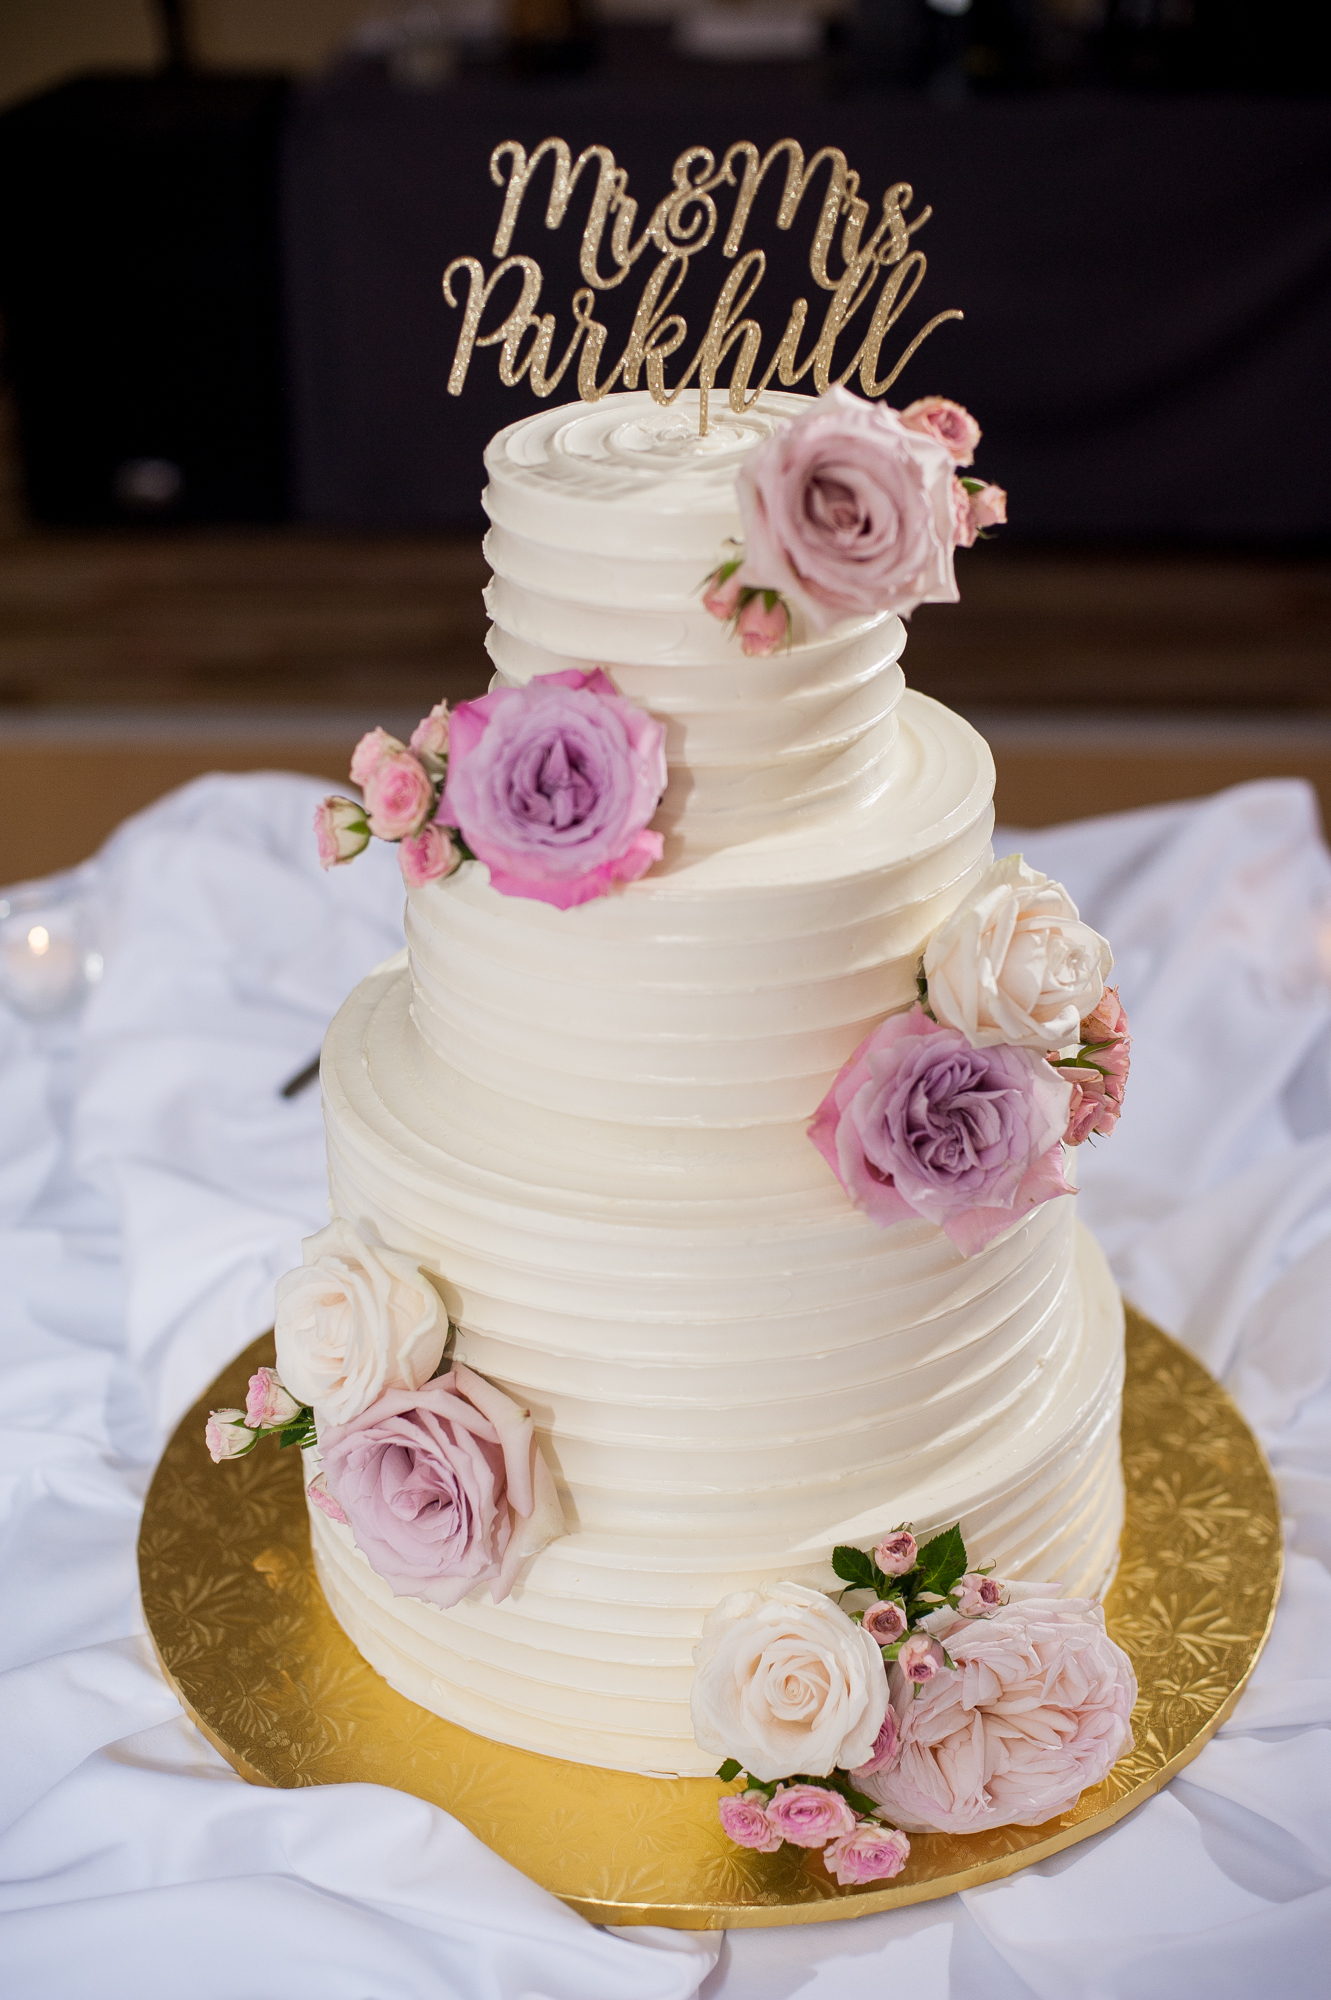 Similar to the first dance photos, I love to cross-light or side-light the cake to really bring out the details and separate the cake from the background or the rest of the room.  This technique works great for cake toppers too that are often the same color as the rest of the decor.